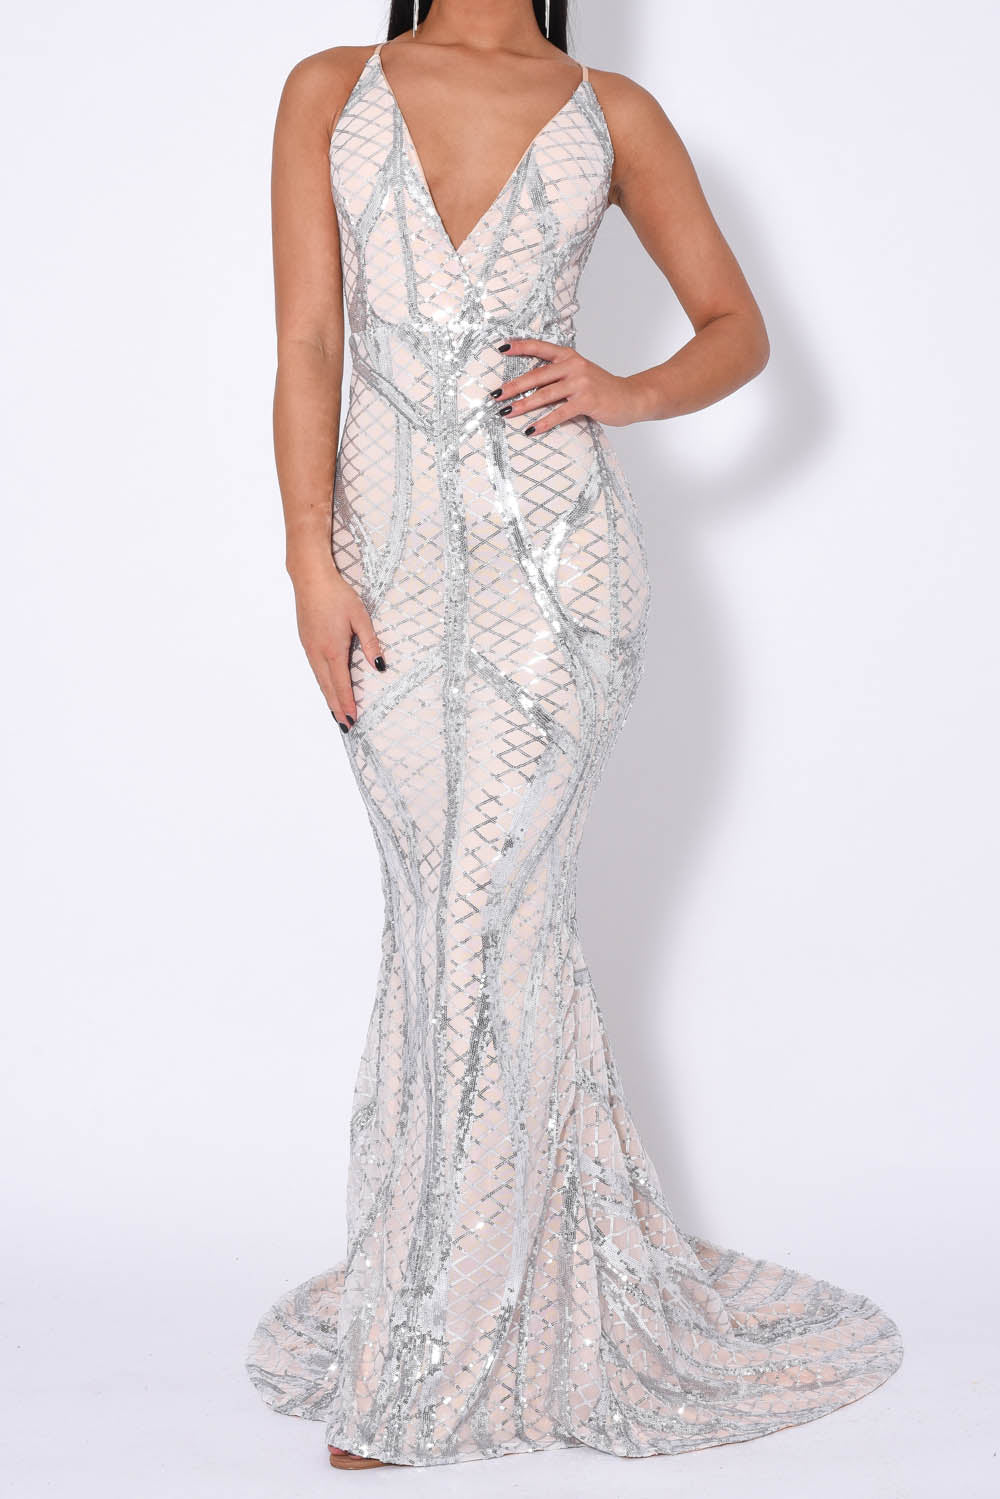 Last Dance Silver Nude Plunge Cage Sequin Bandage Illusion Fishtail Dress